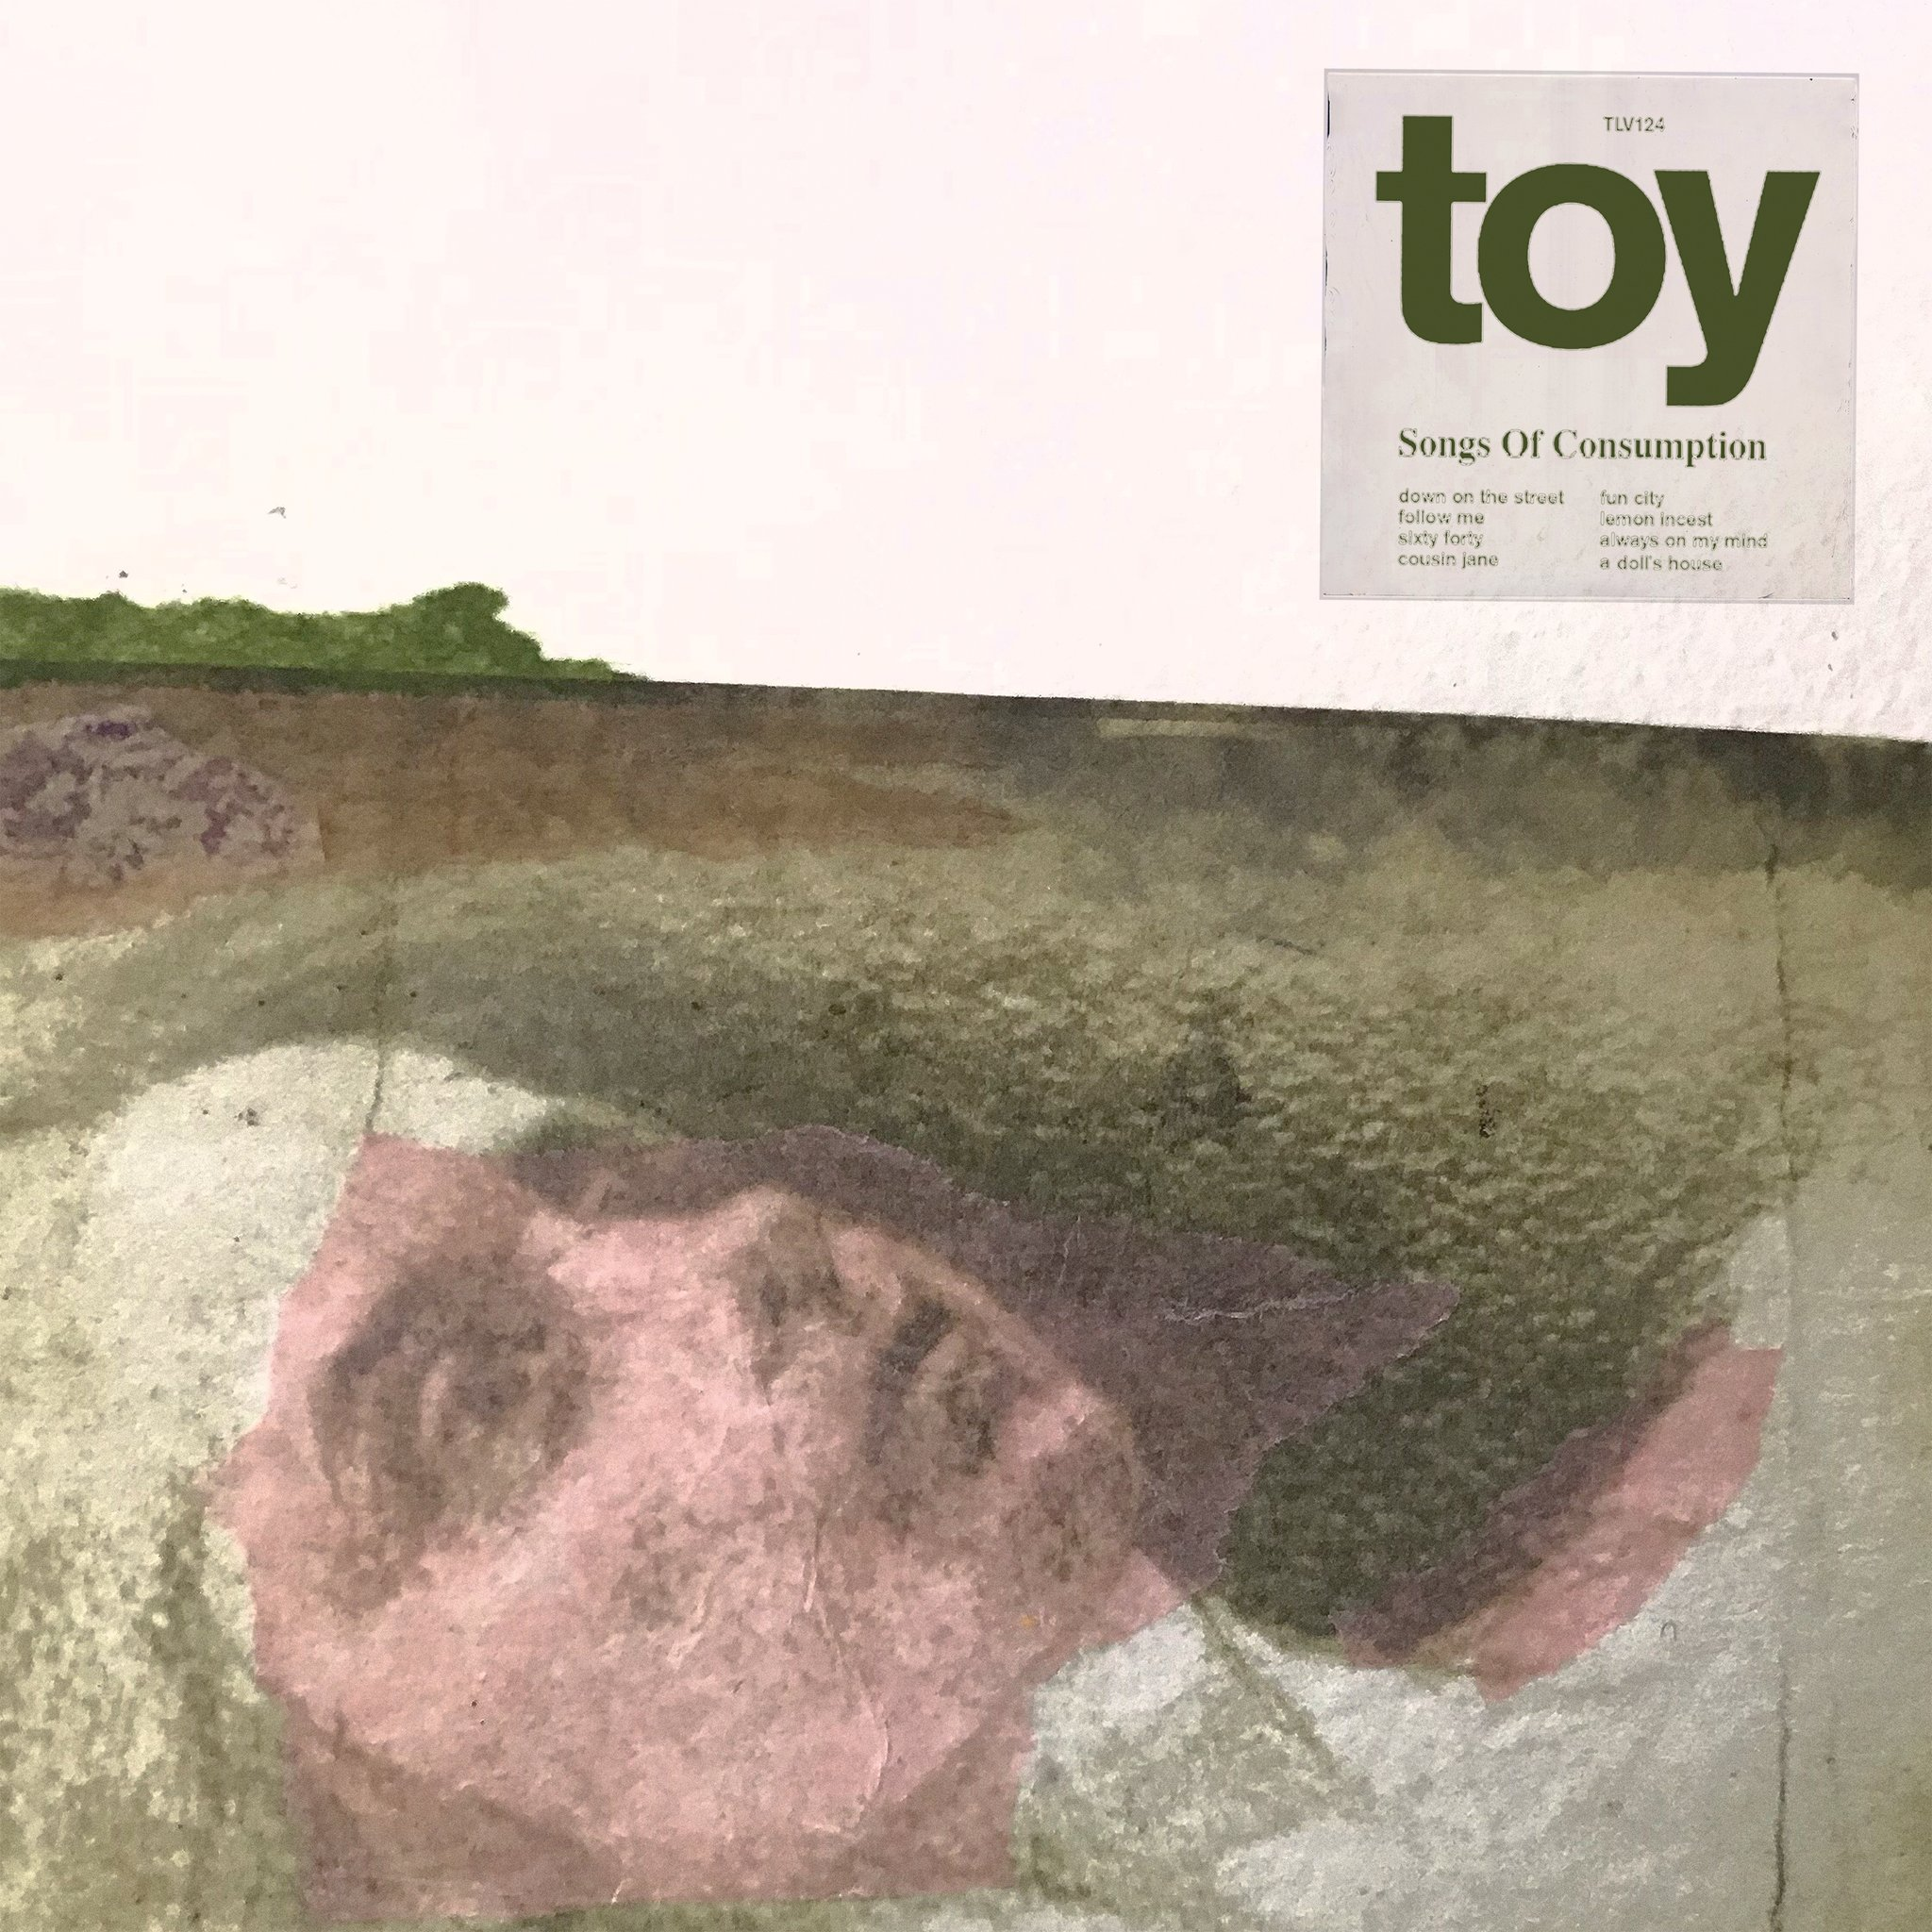 News – TOY – Songs Of Consumption